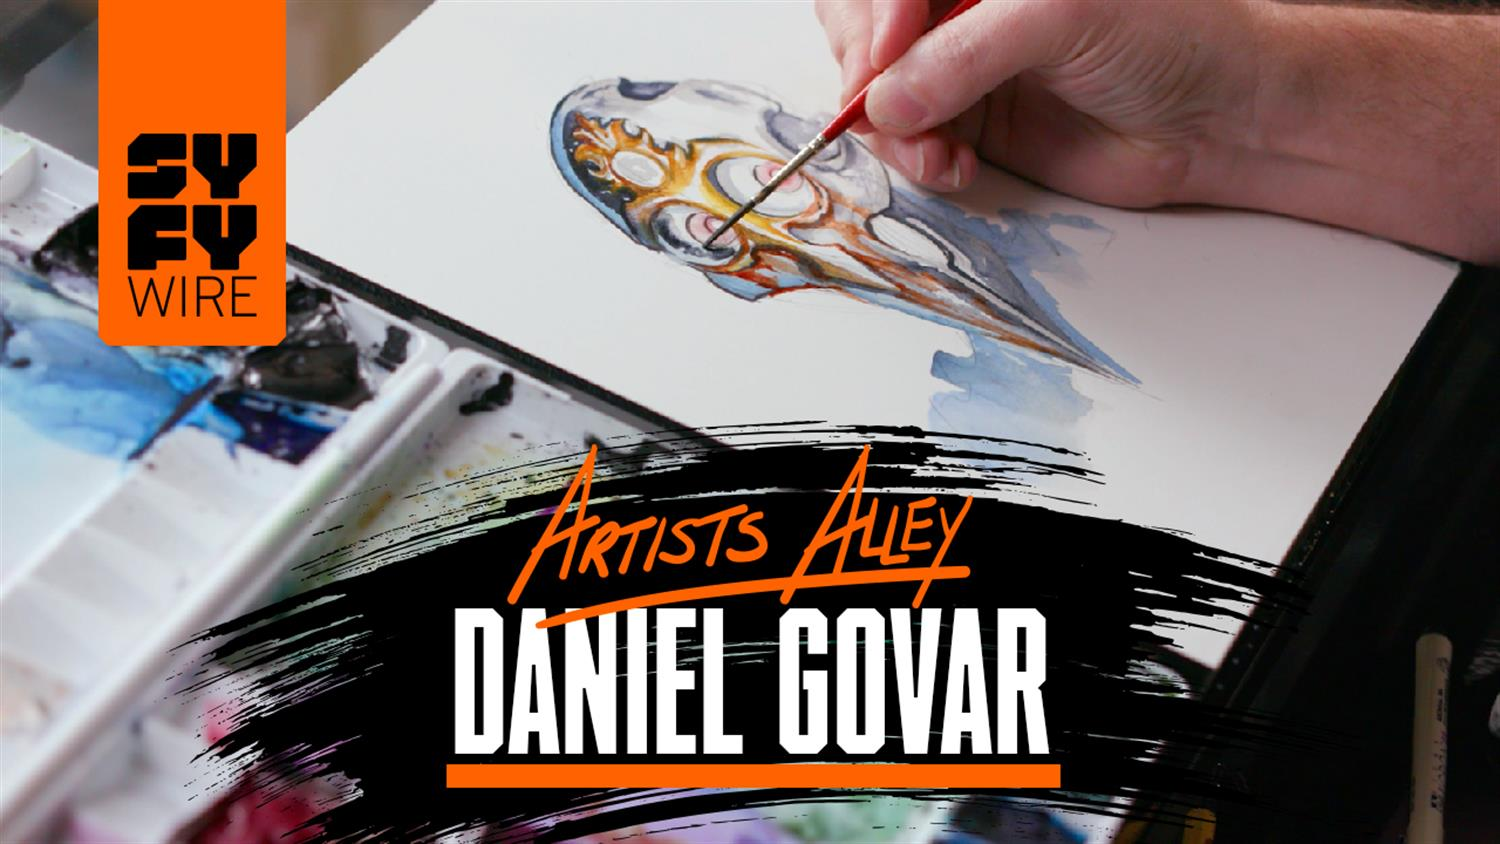 Watch Daniel Govar Paint an Android